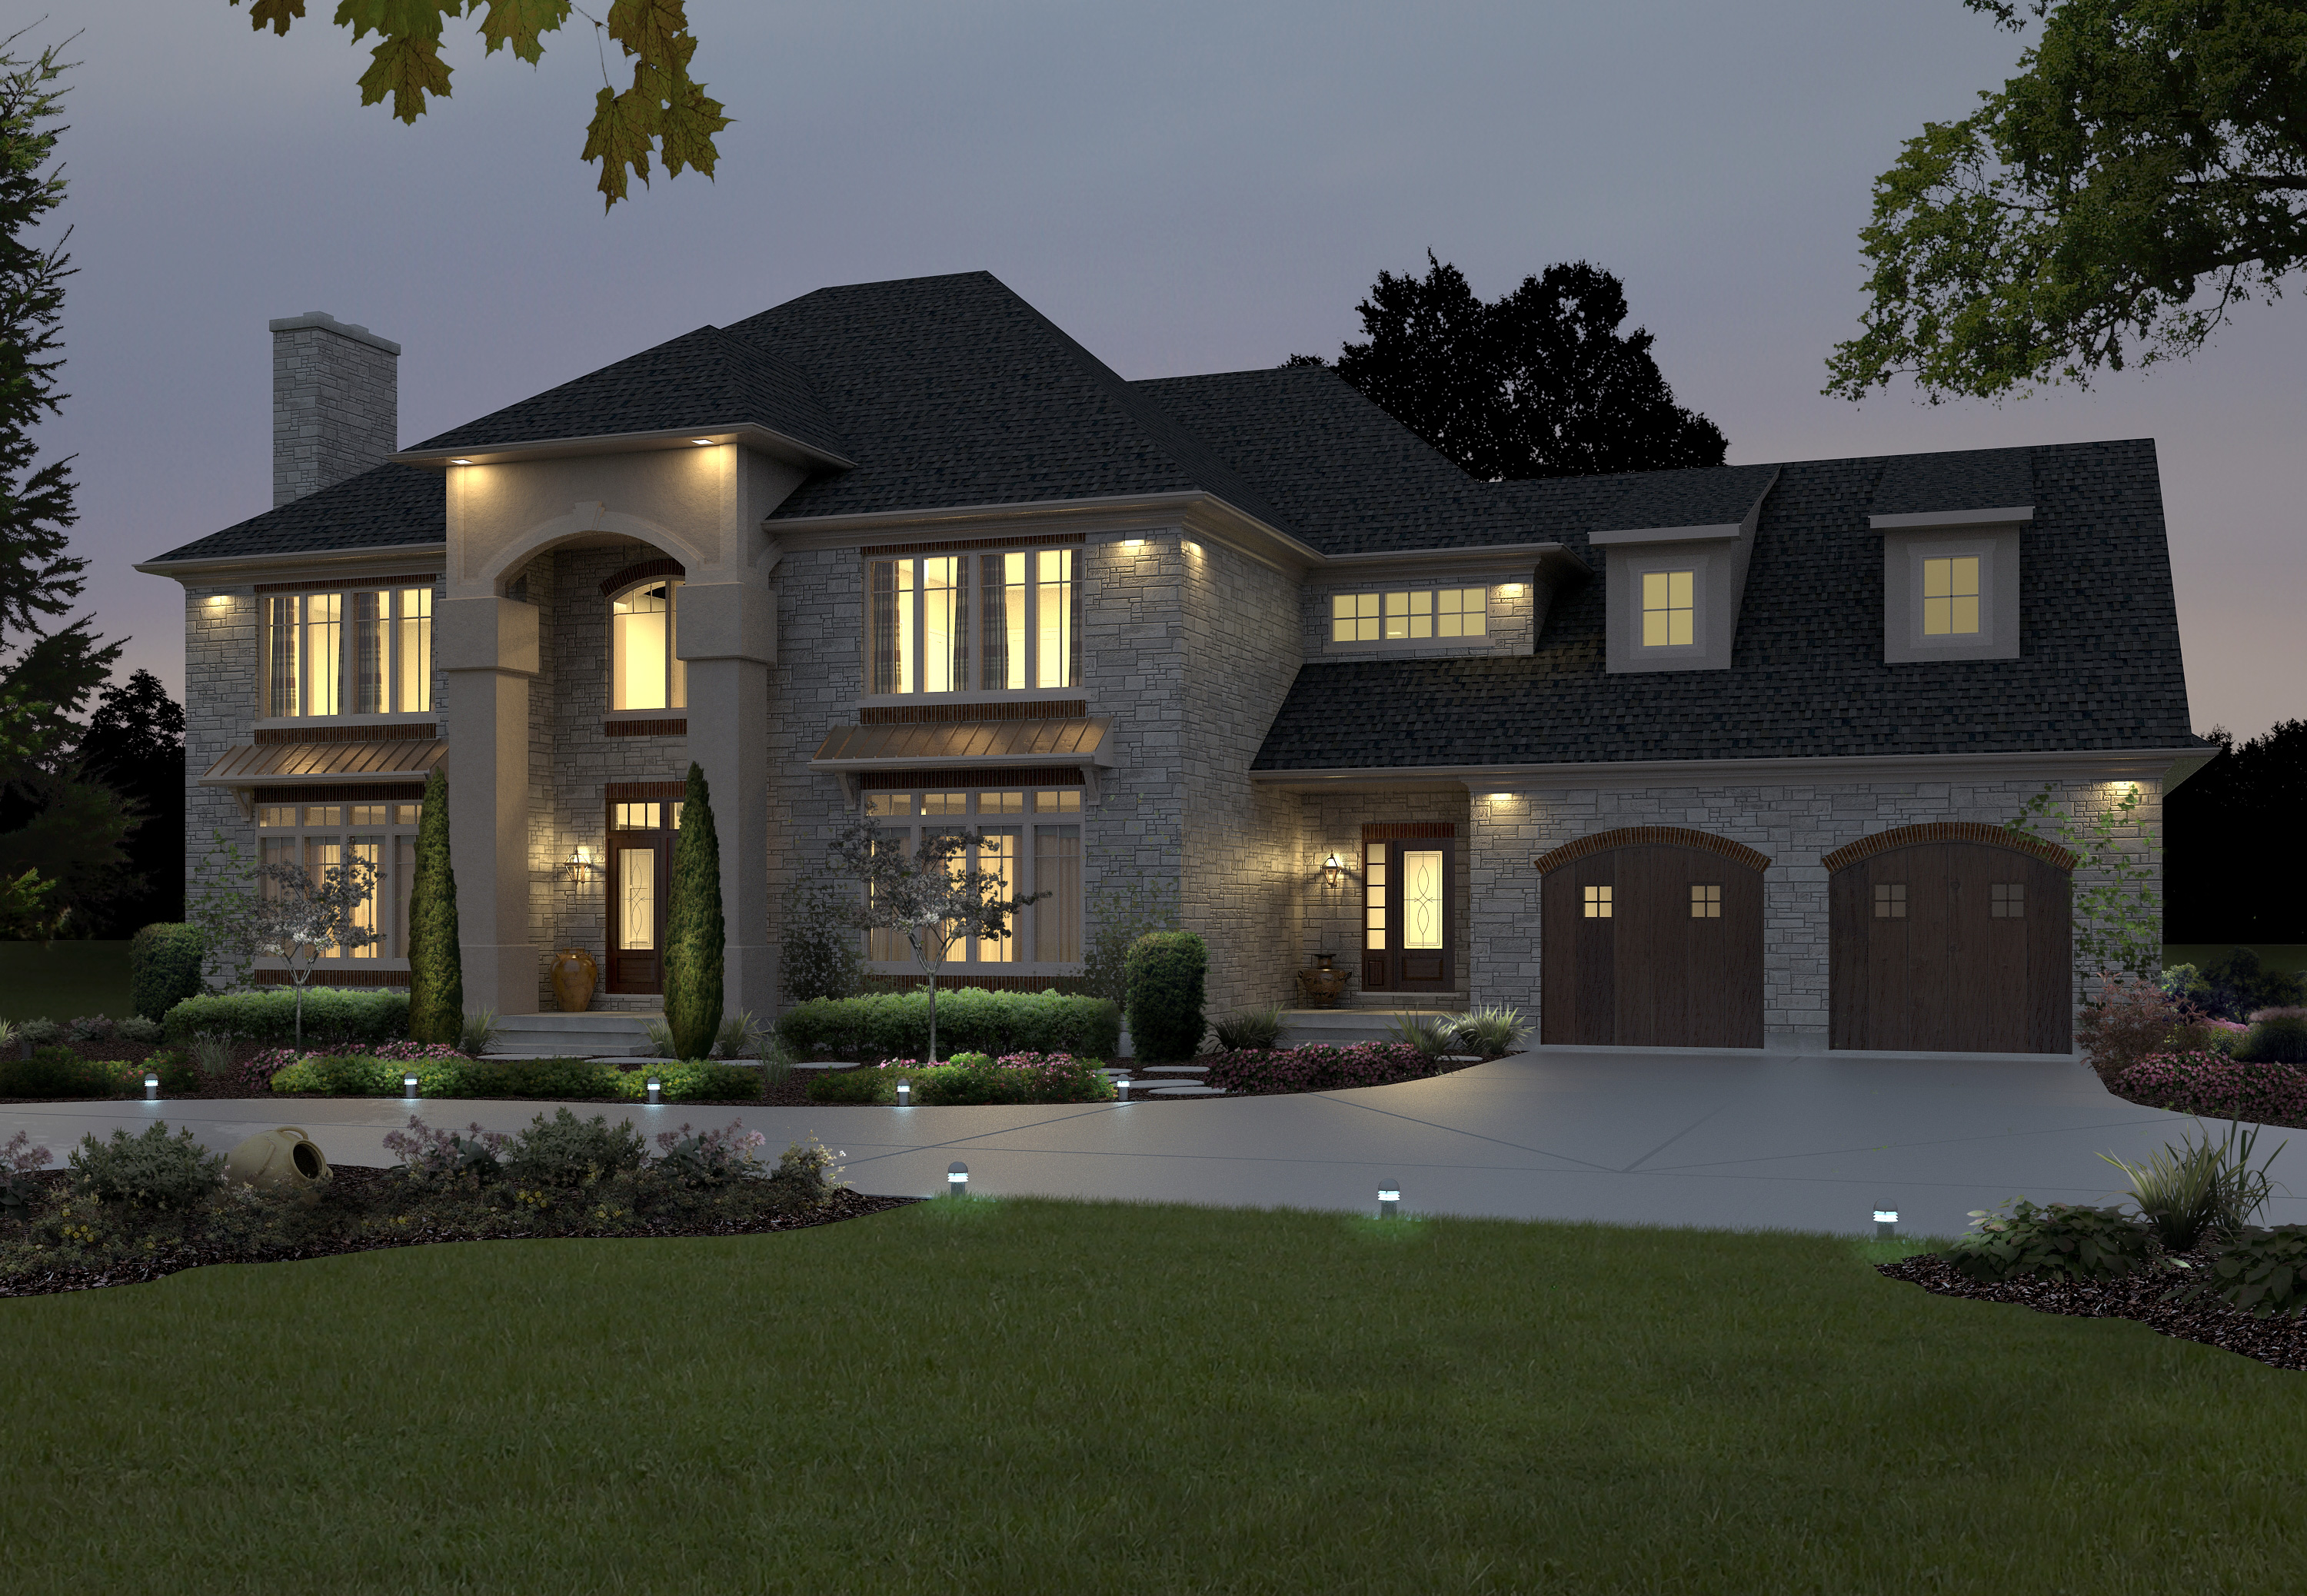 Custom home designs custom house plans custom home plans Design the outside of your house online